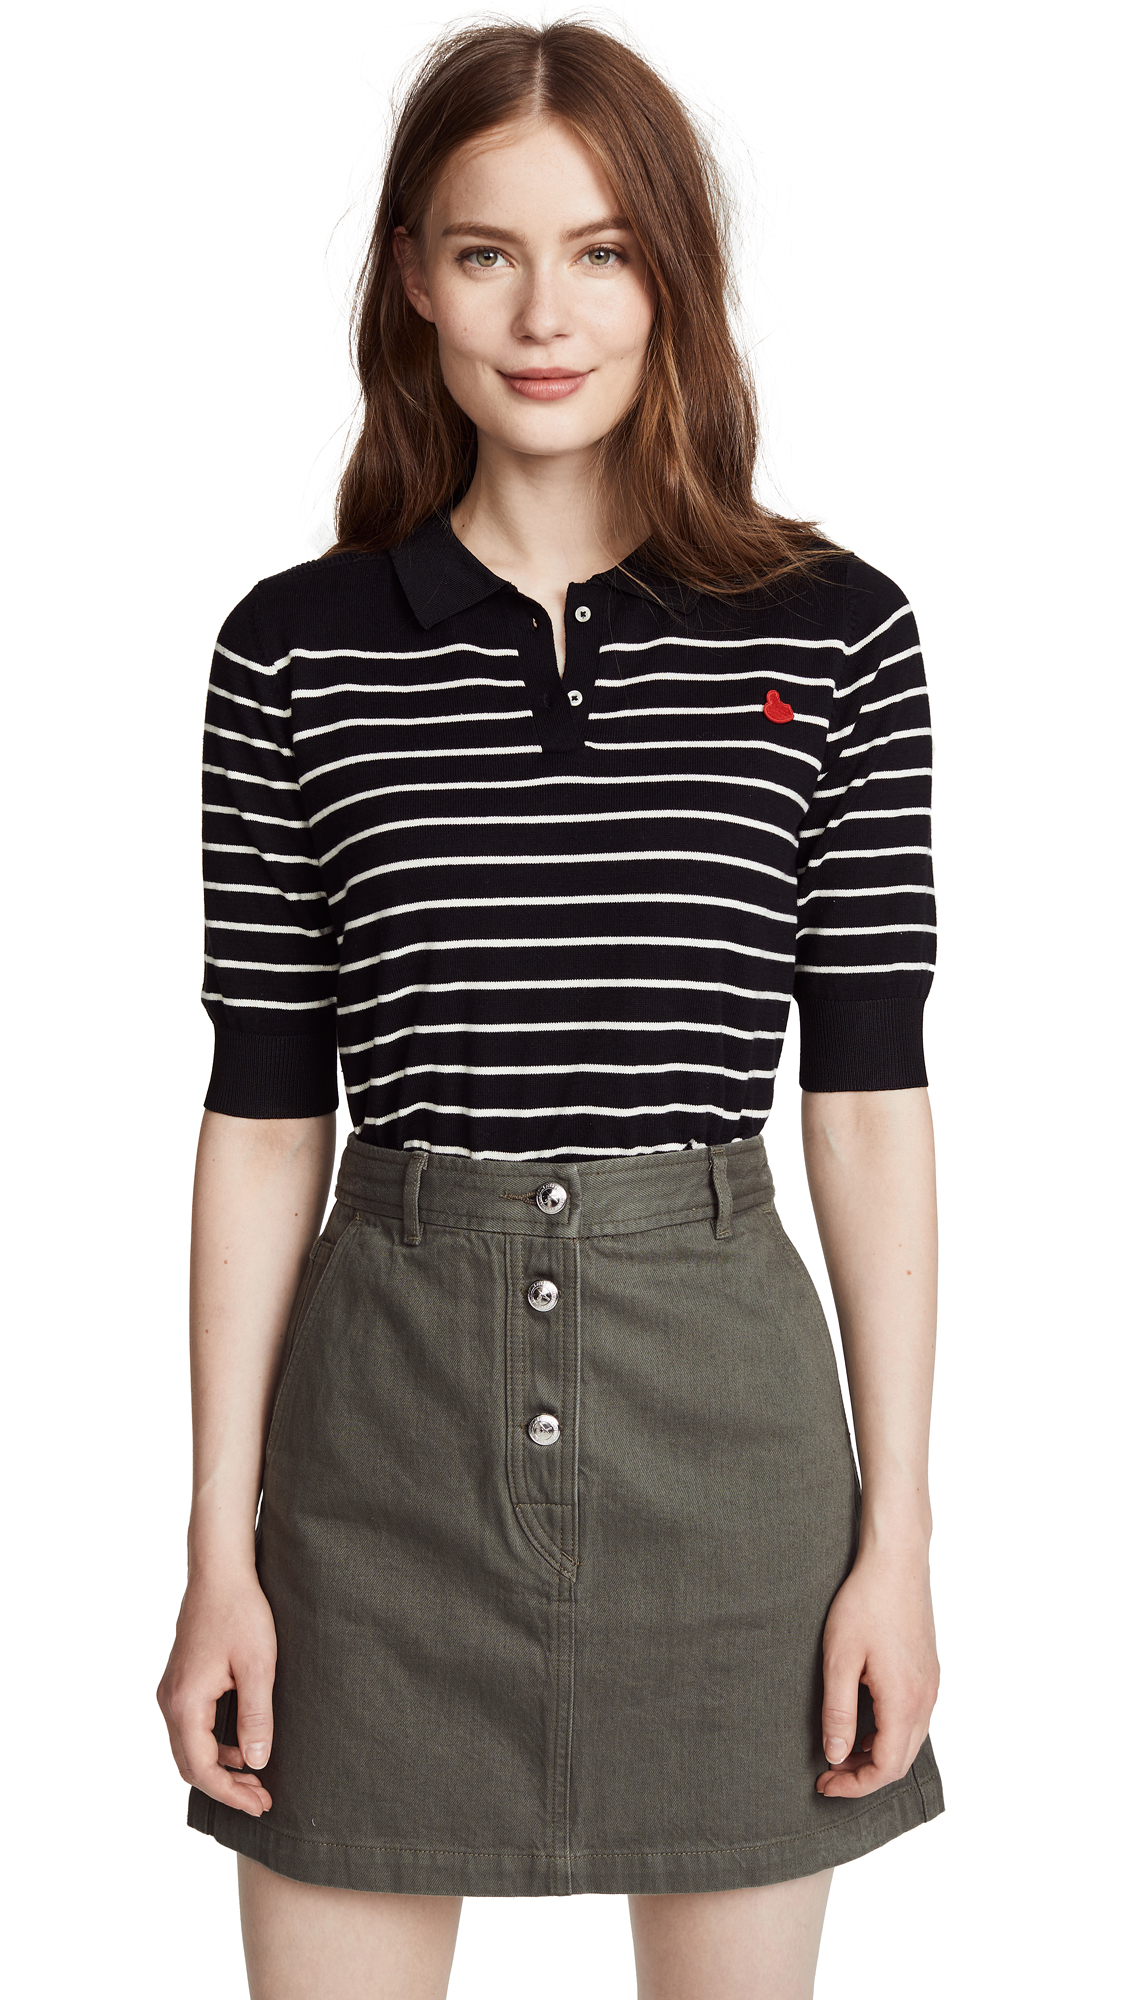 Scotch & Soda/Maison Scotch Knit Polo Tee In Stripes